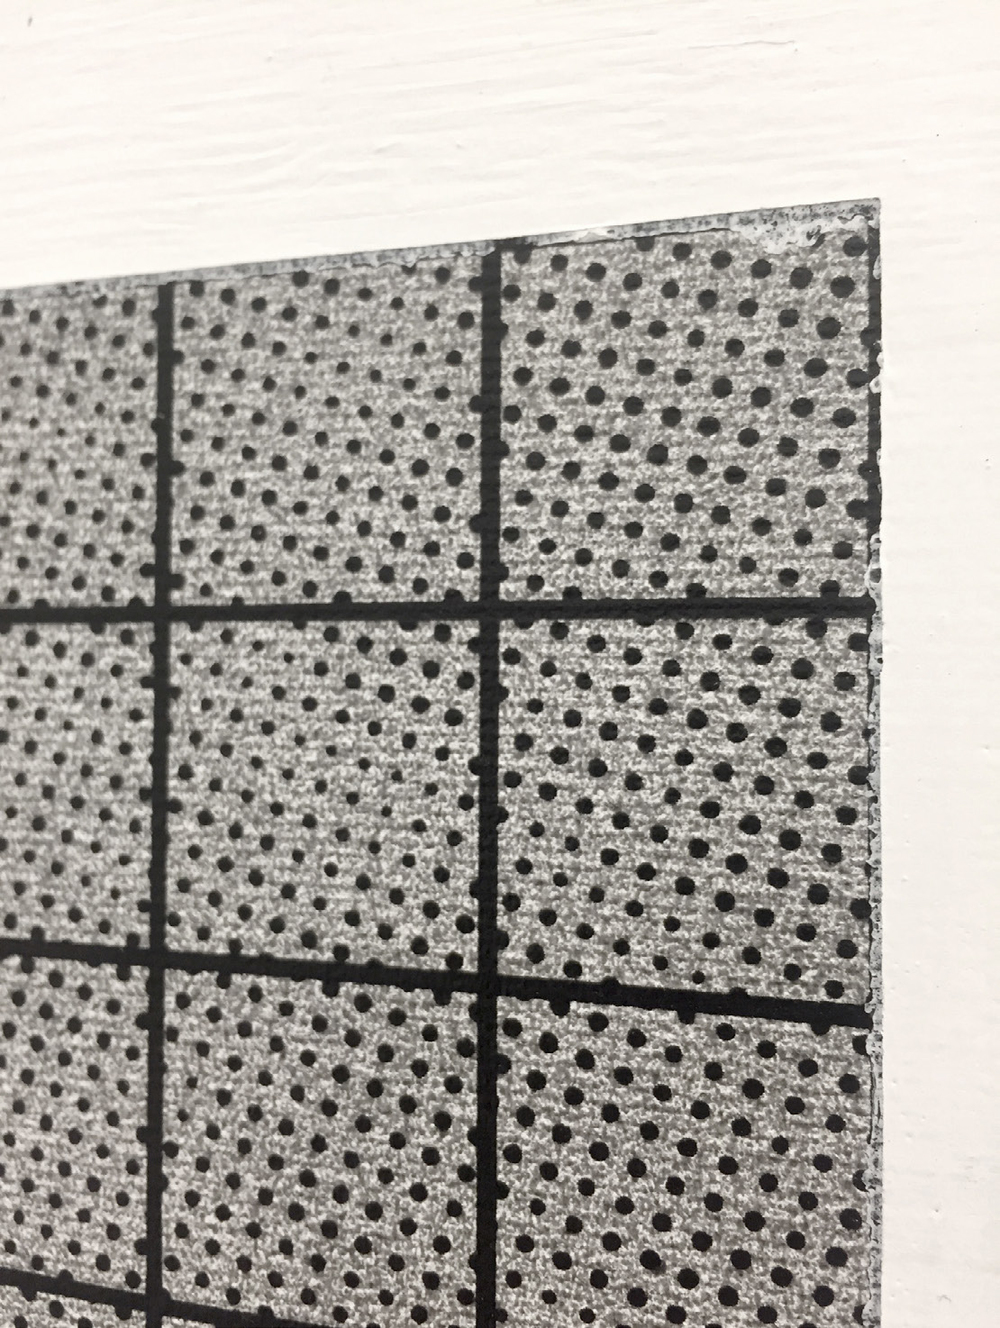 Jan S. Hansen: 'Grid', detail.